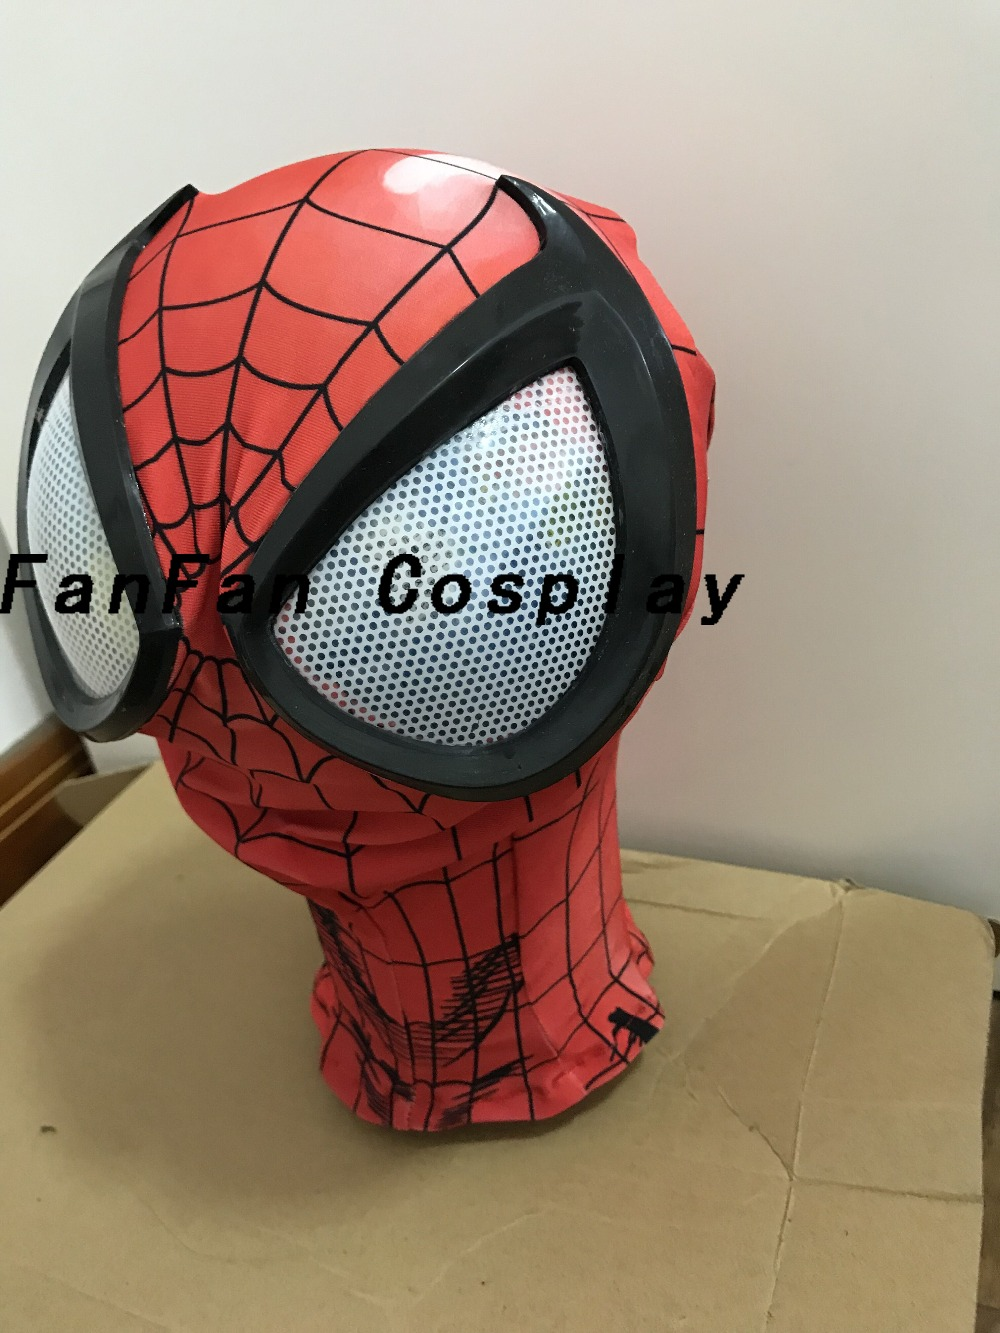 Image 2 - 3D Spiderman Masks Big Spiderman Lenses Spiderman Mask for Halloween Party Costume Props Adult Hot Sale-in Boys Costume Accessories from Novelty & Special Use